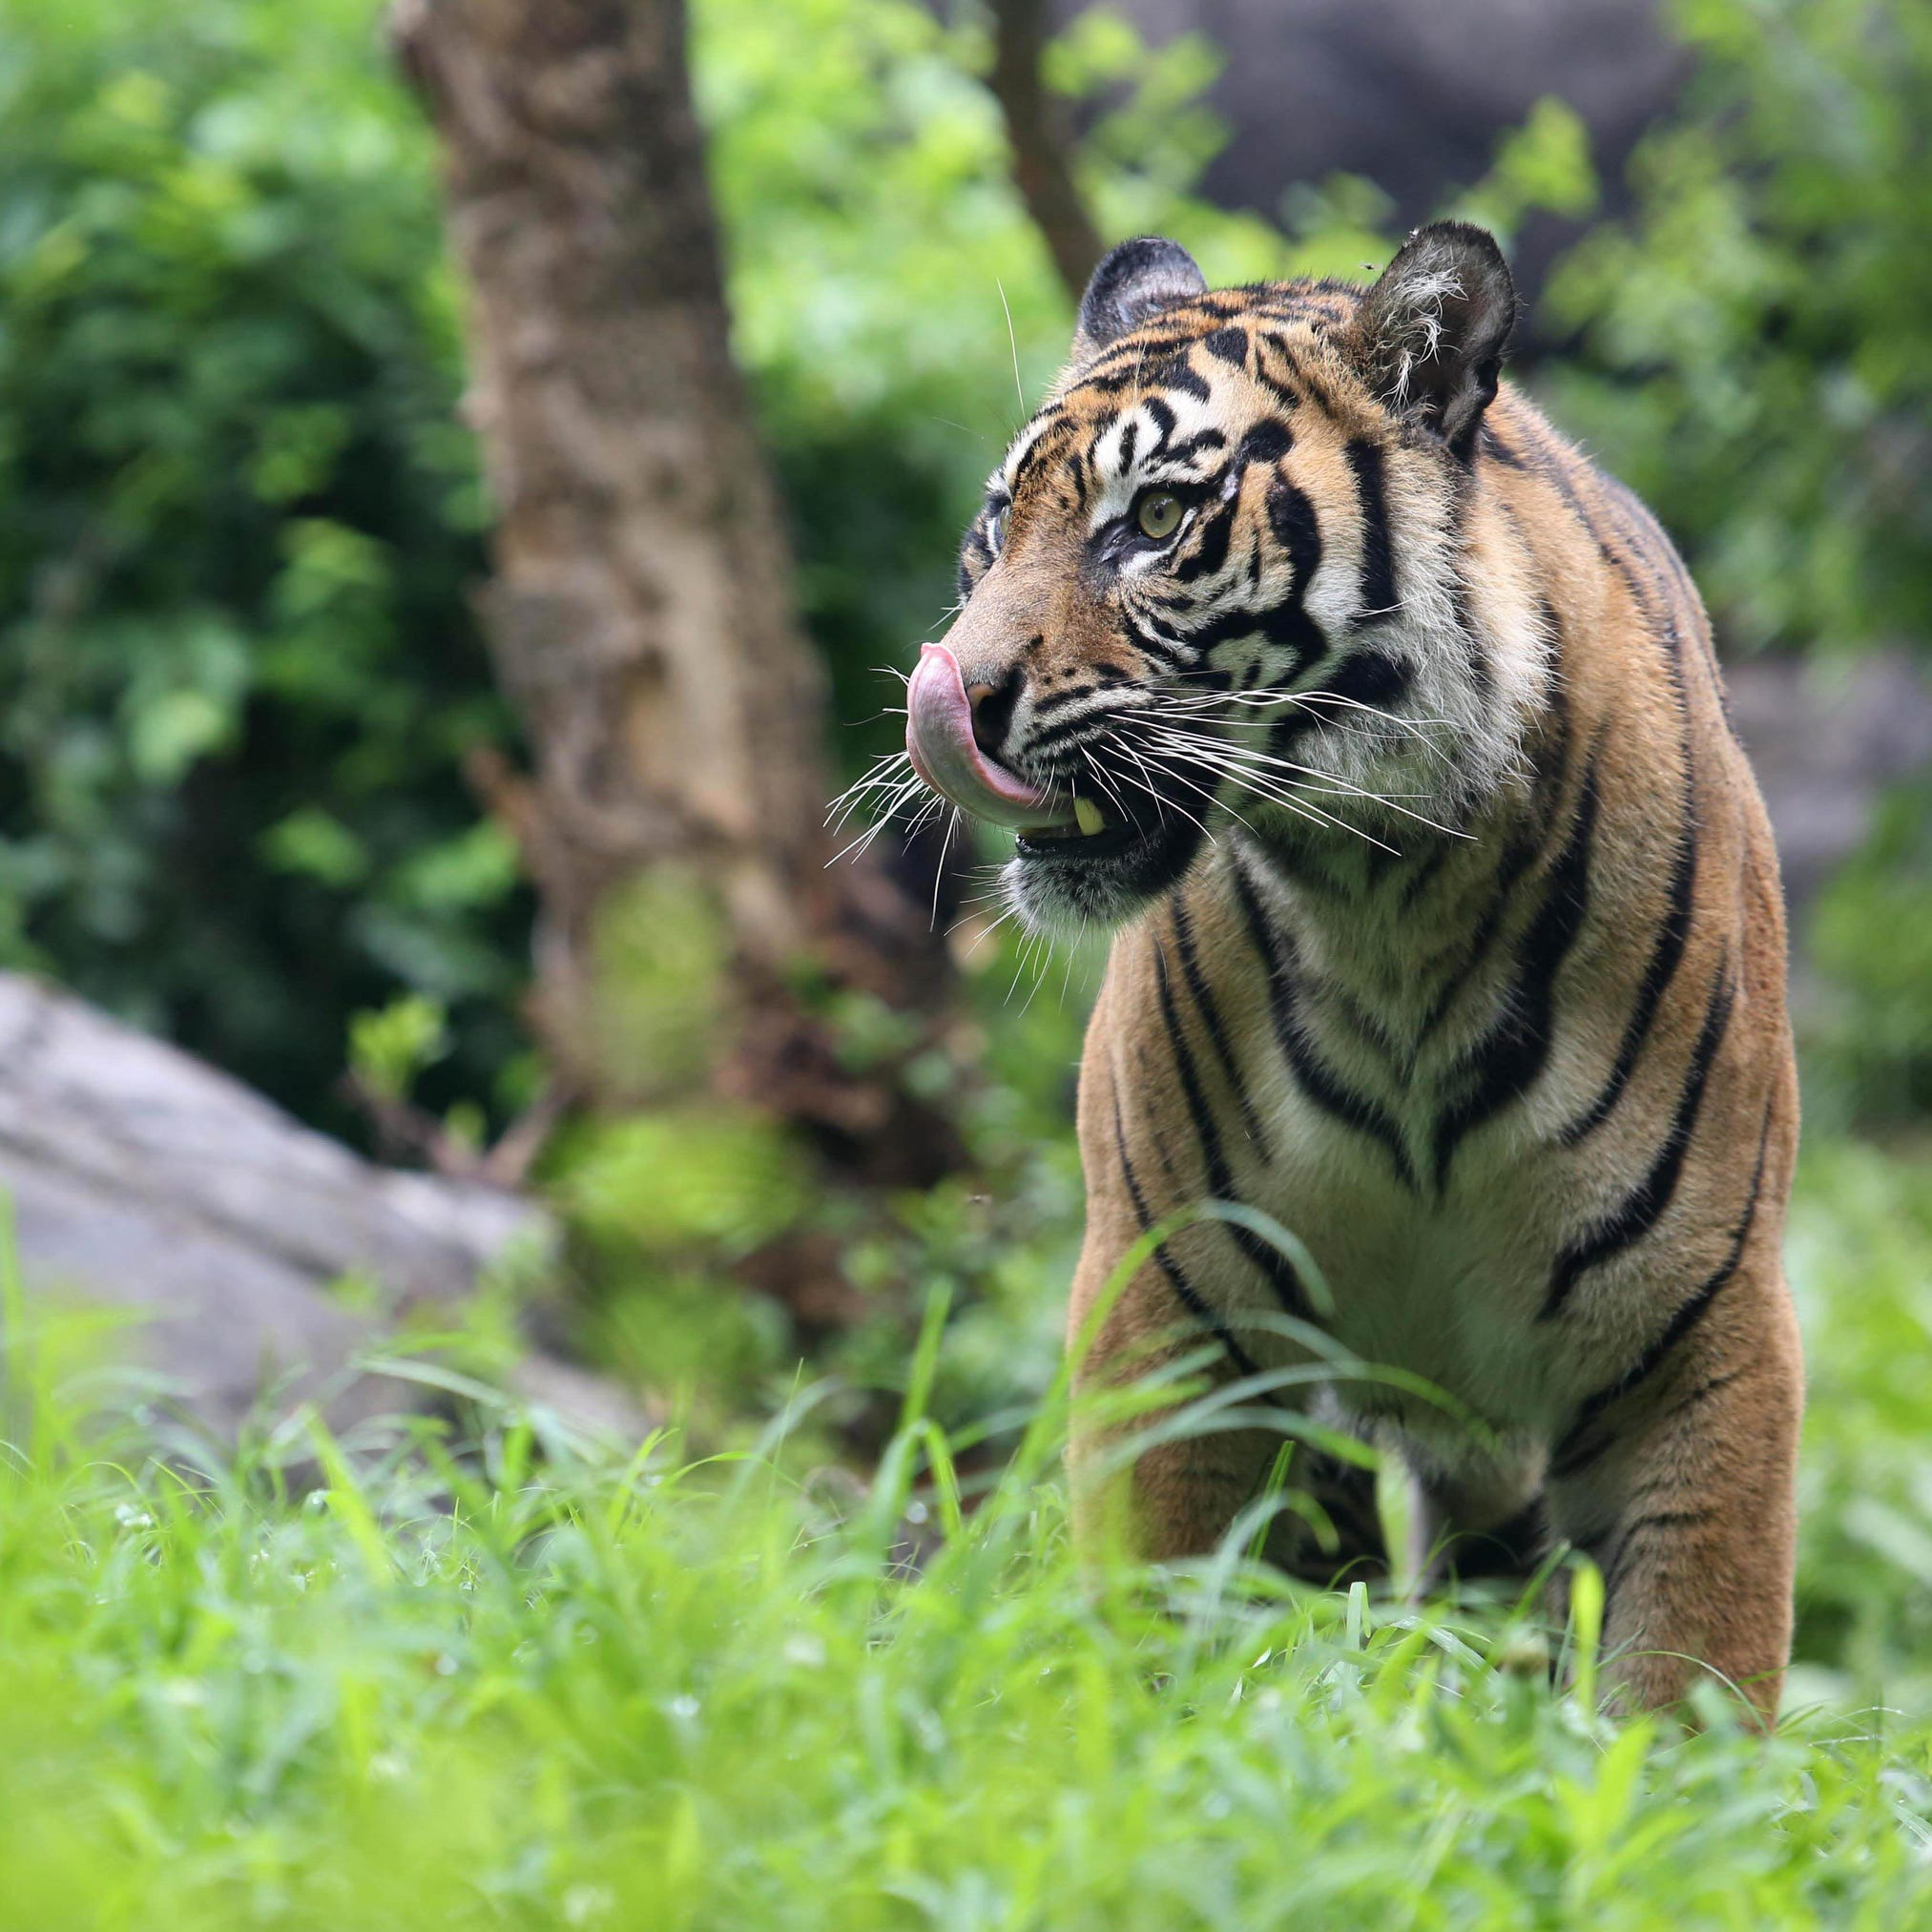 Sumatran tiger exhibit is open at Nashville Zoo